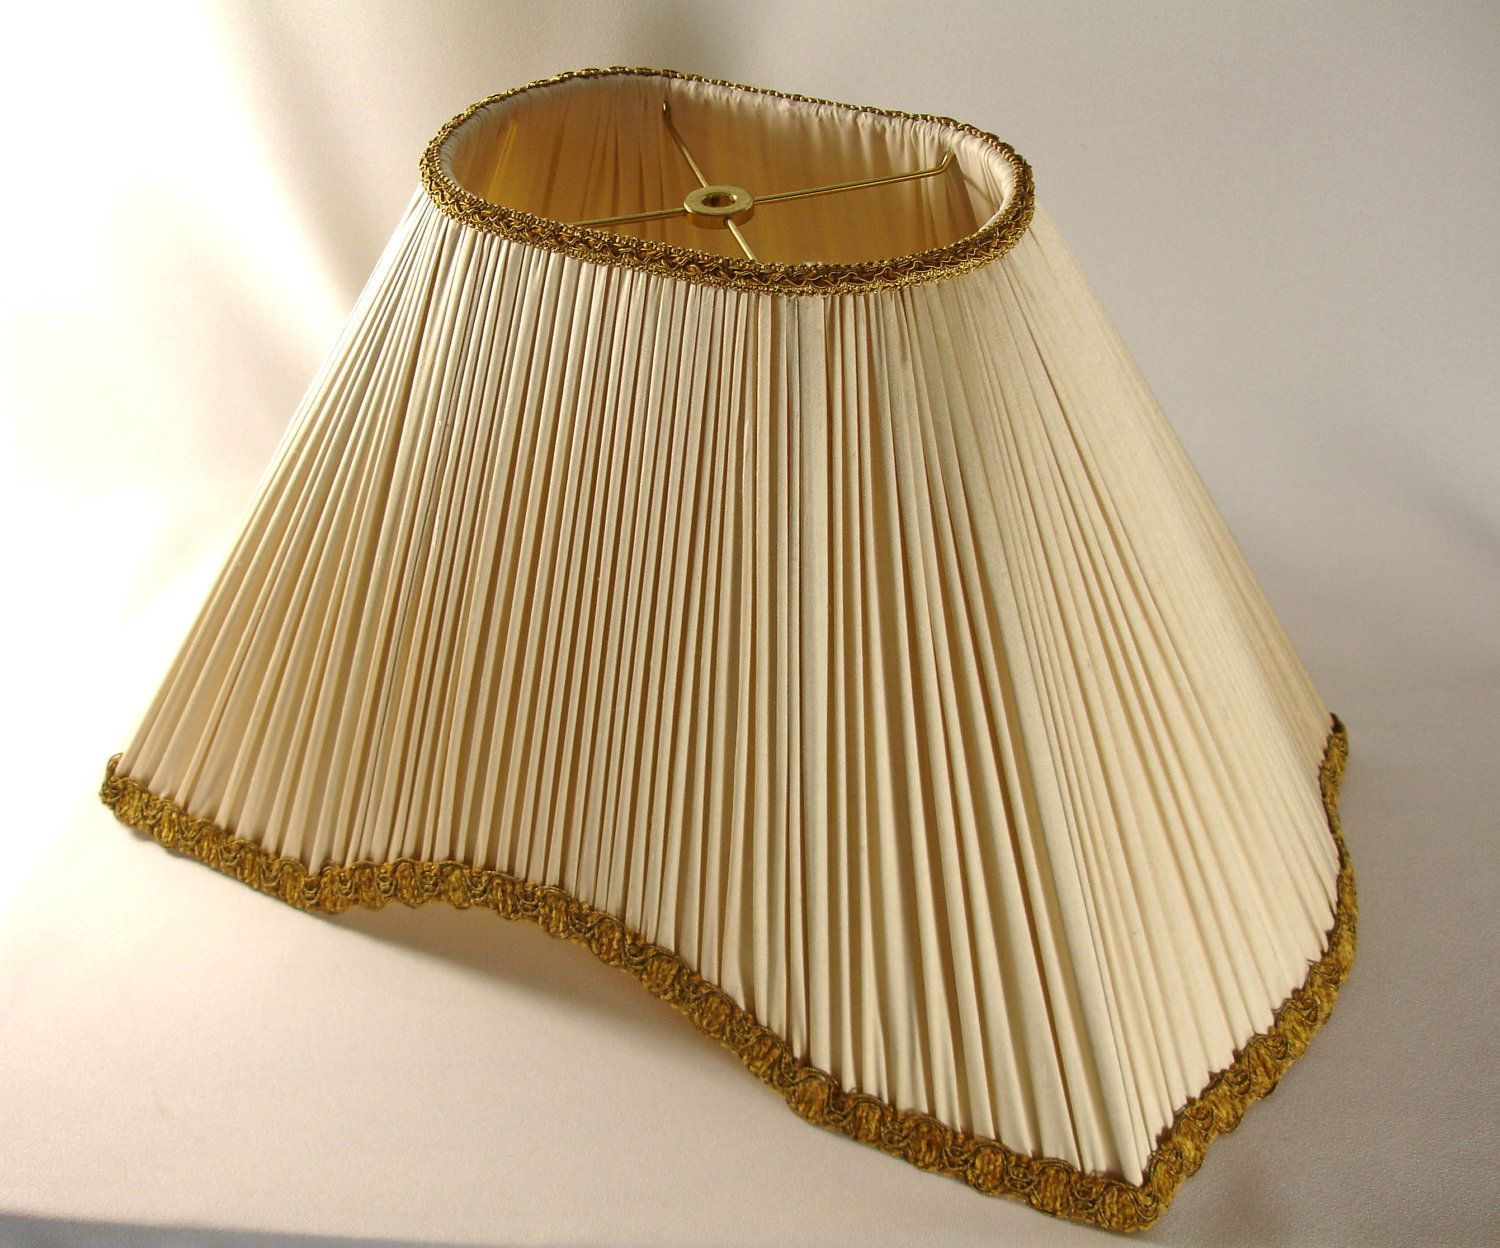 lamp spider fitter shade shades pleated silk softback faux lampshade inch colors mushroom products urbanest